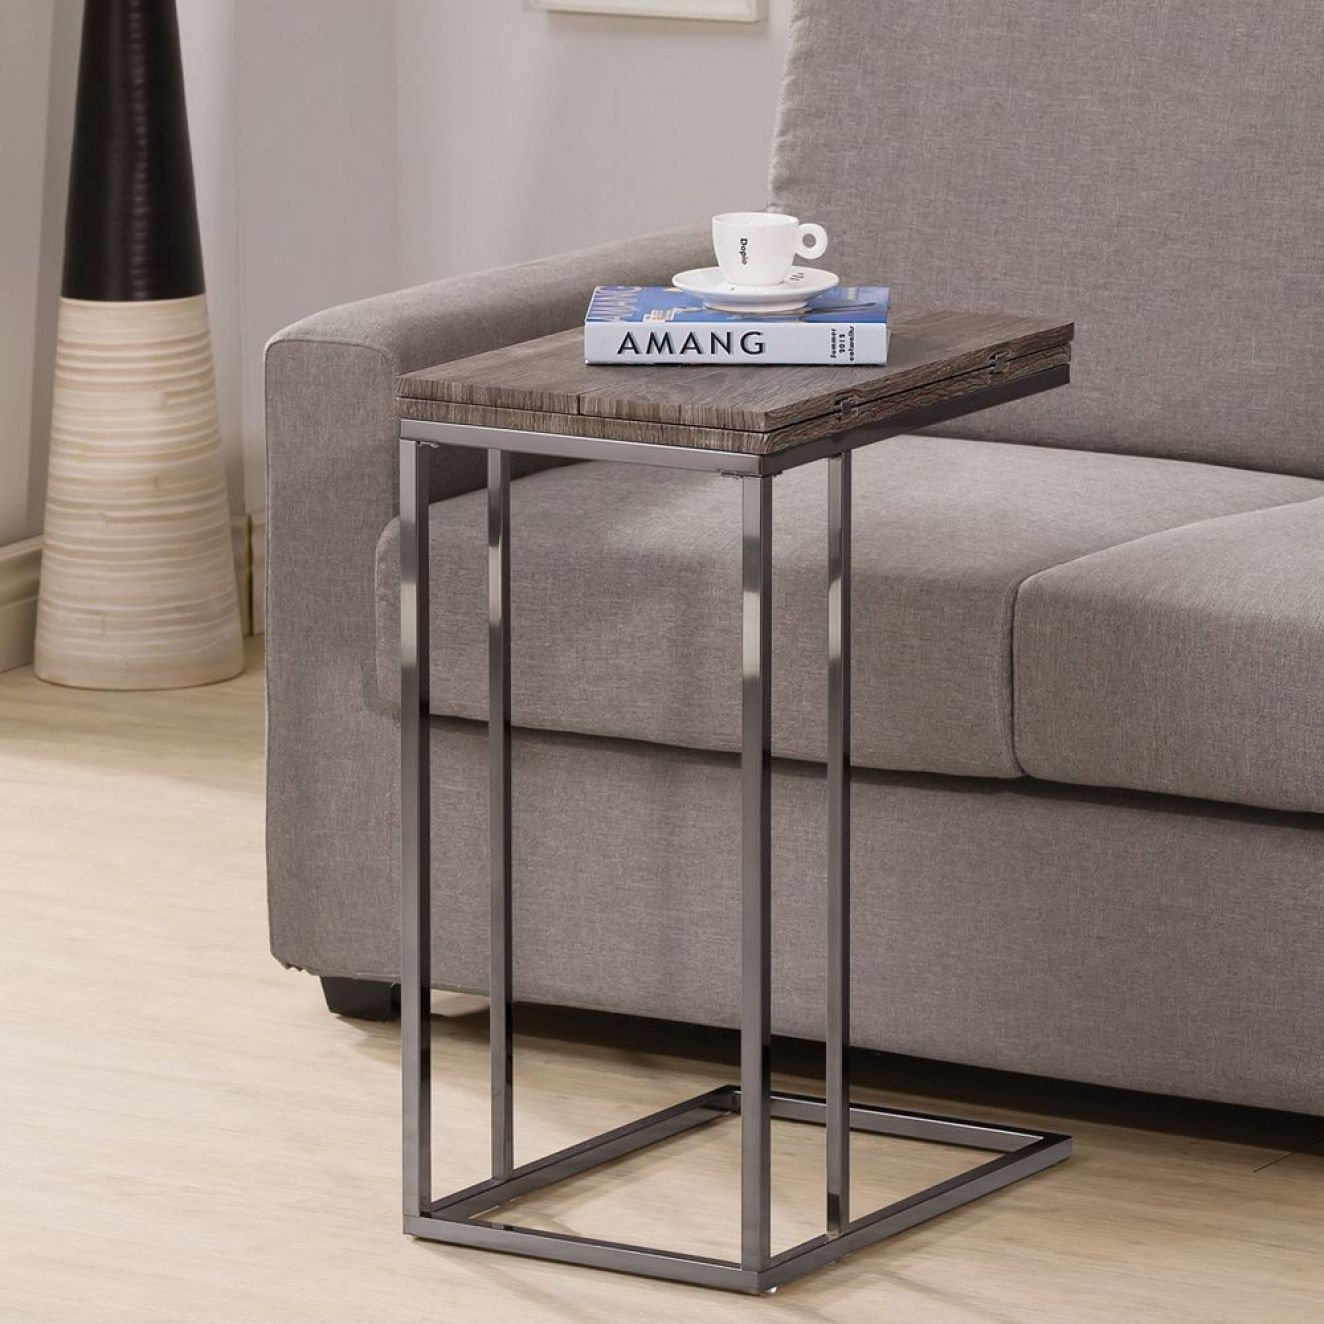 Narrow sofa end table interior paint color ideas check more at narrow sofa end table interior paint color ideas check more at http geotapseo Gallery